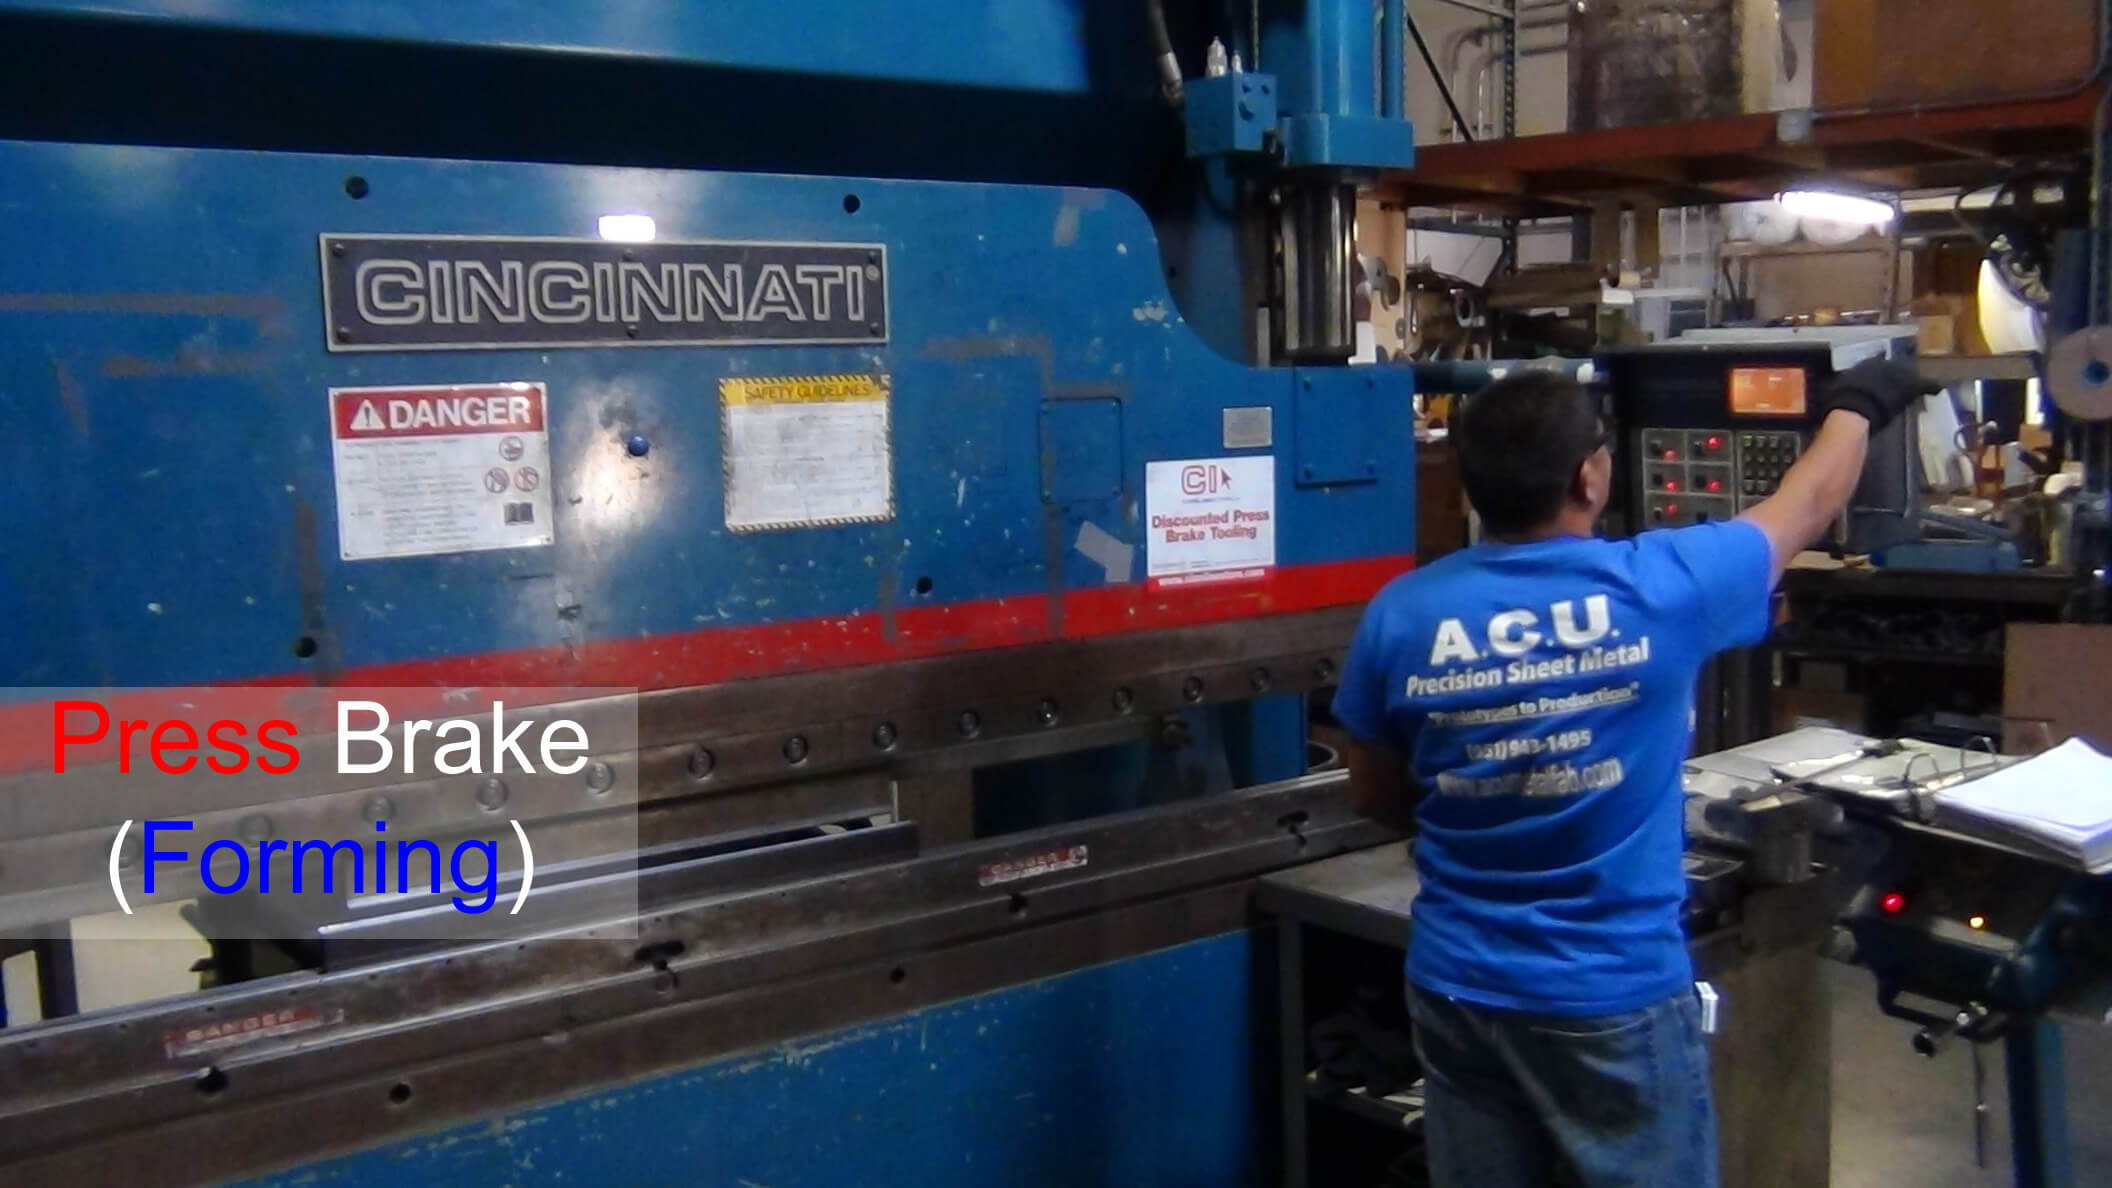 Metal forming press brake from ACU Precision Sheet Metal